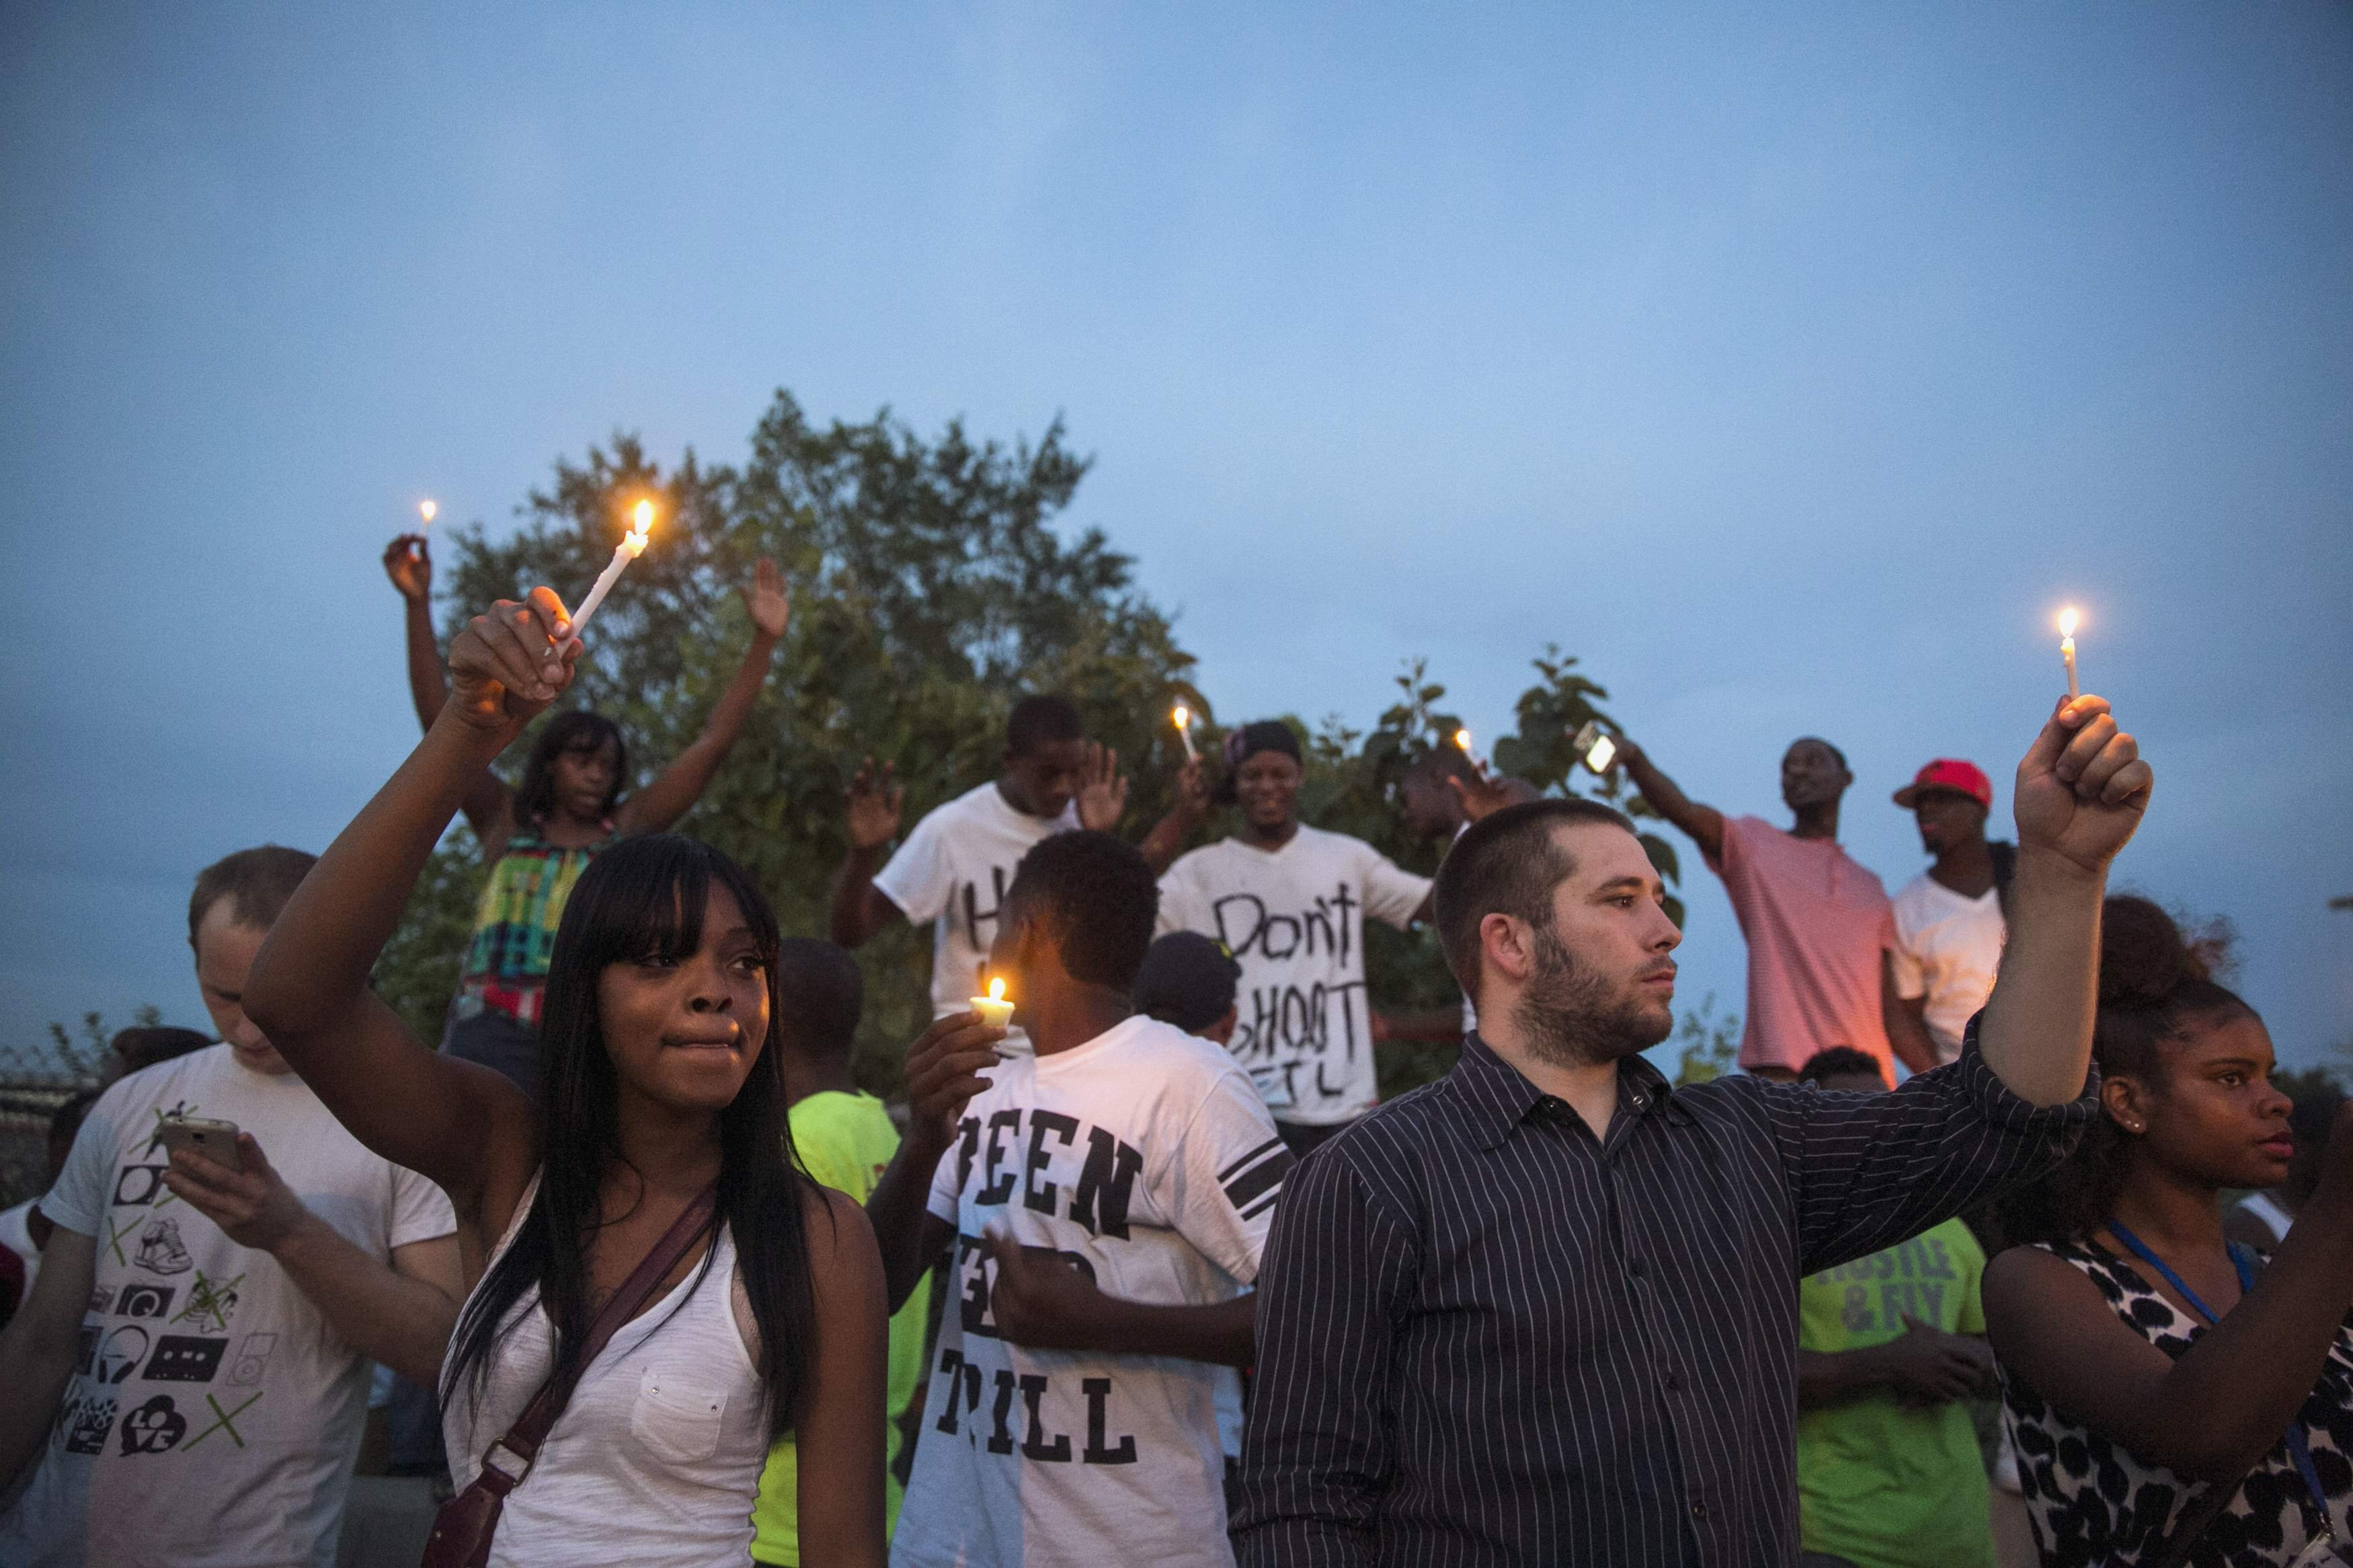 Protesters light candles as they take part in a peaceful demonstration in Ferguson, Mo. on Aug. 14, 2014.